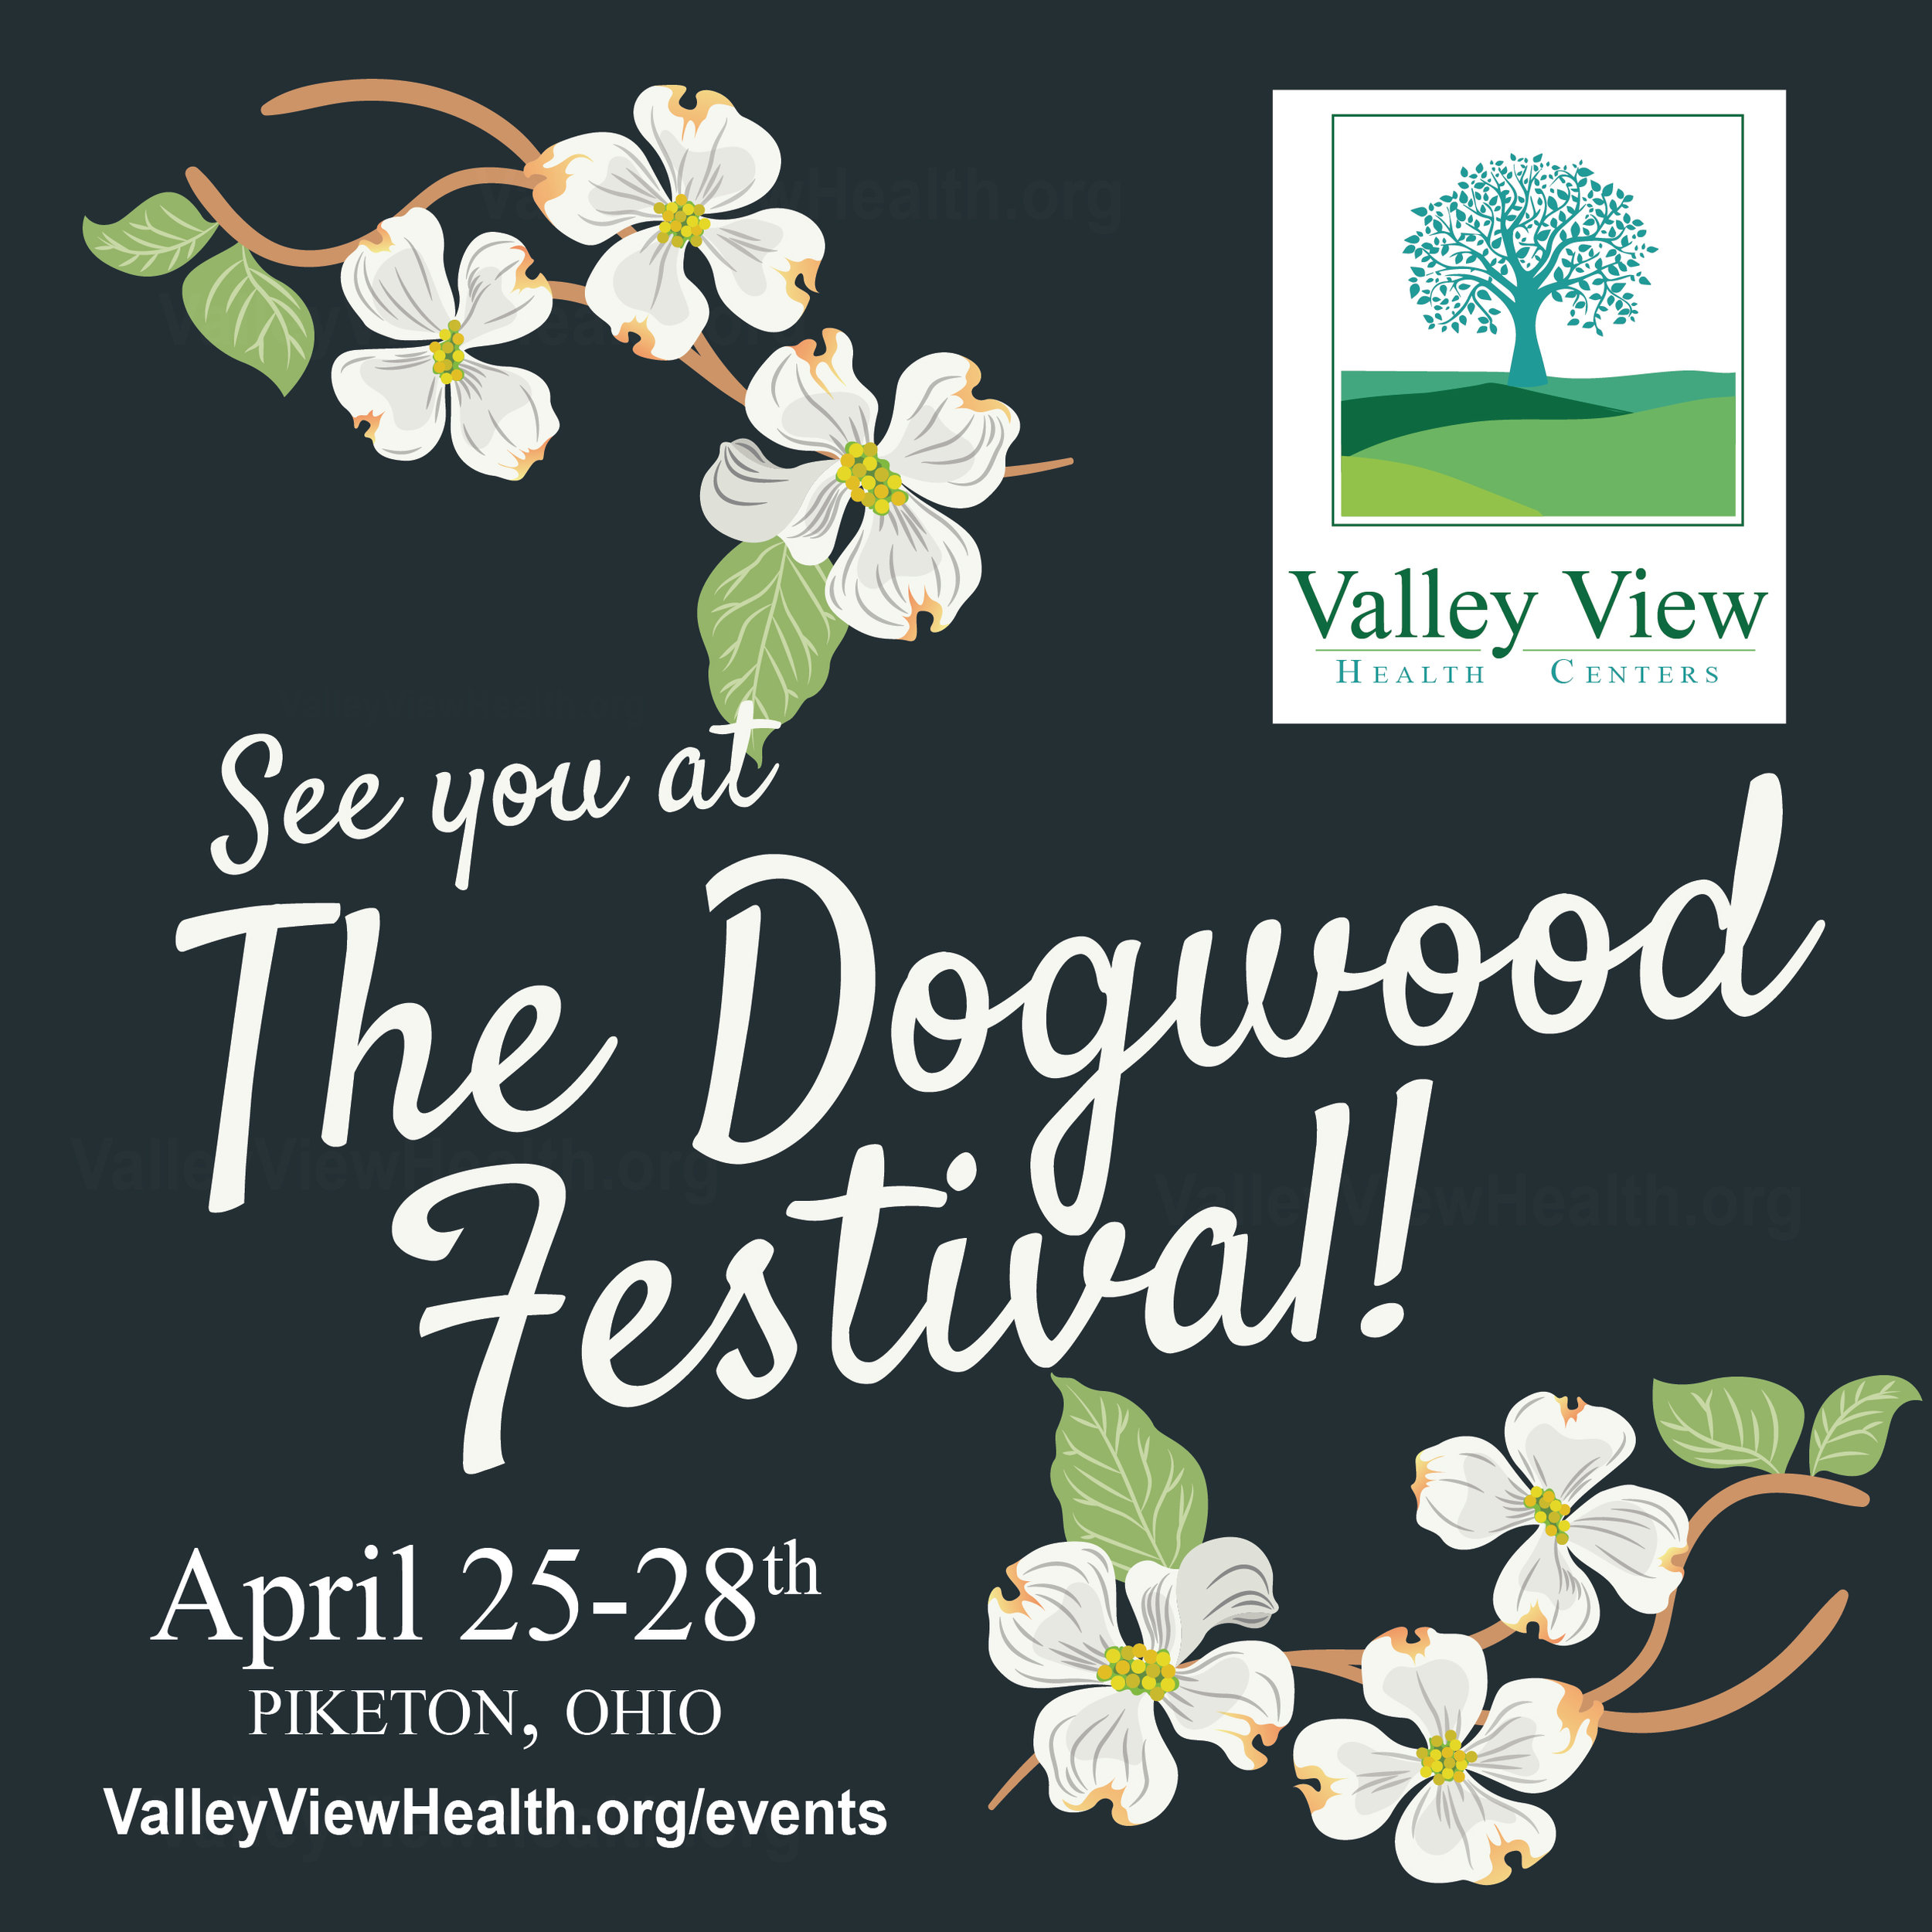 See You at Dogwood-01.jpg